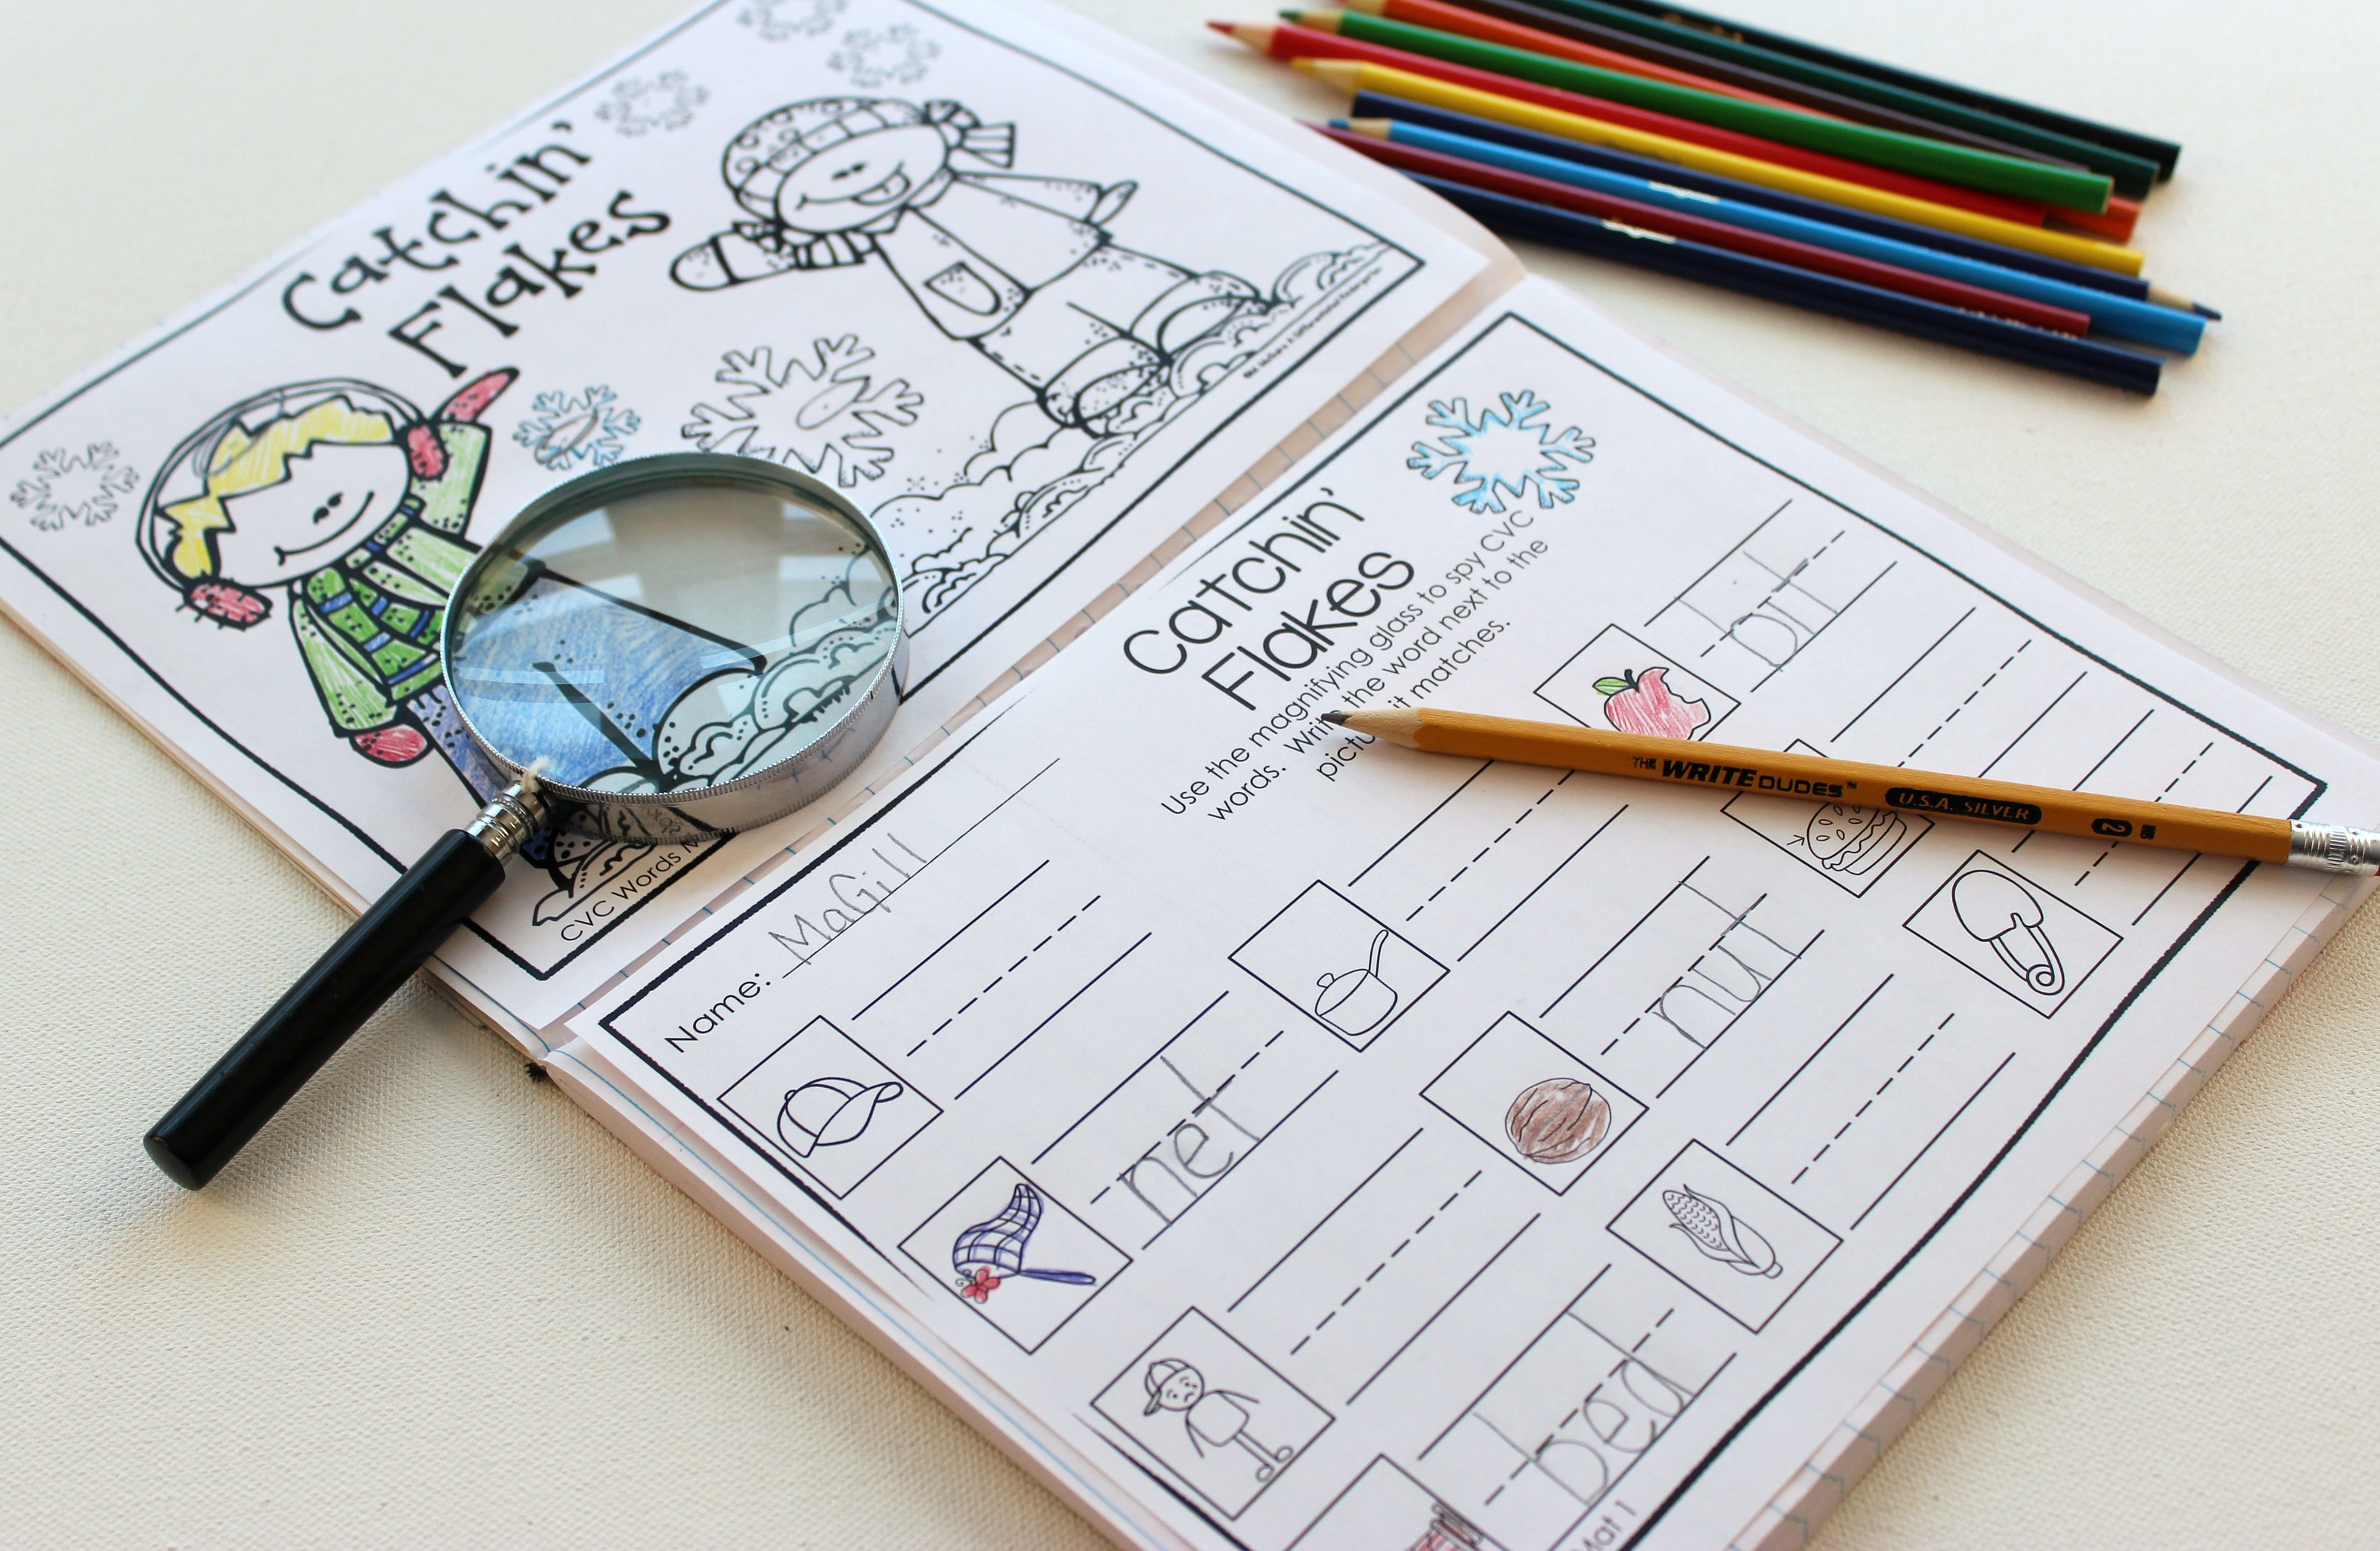 A New Way To Use No Fuss No Muss I Spy Printables